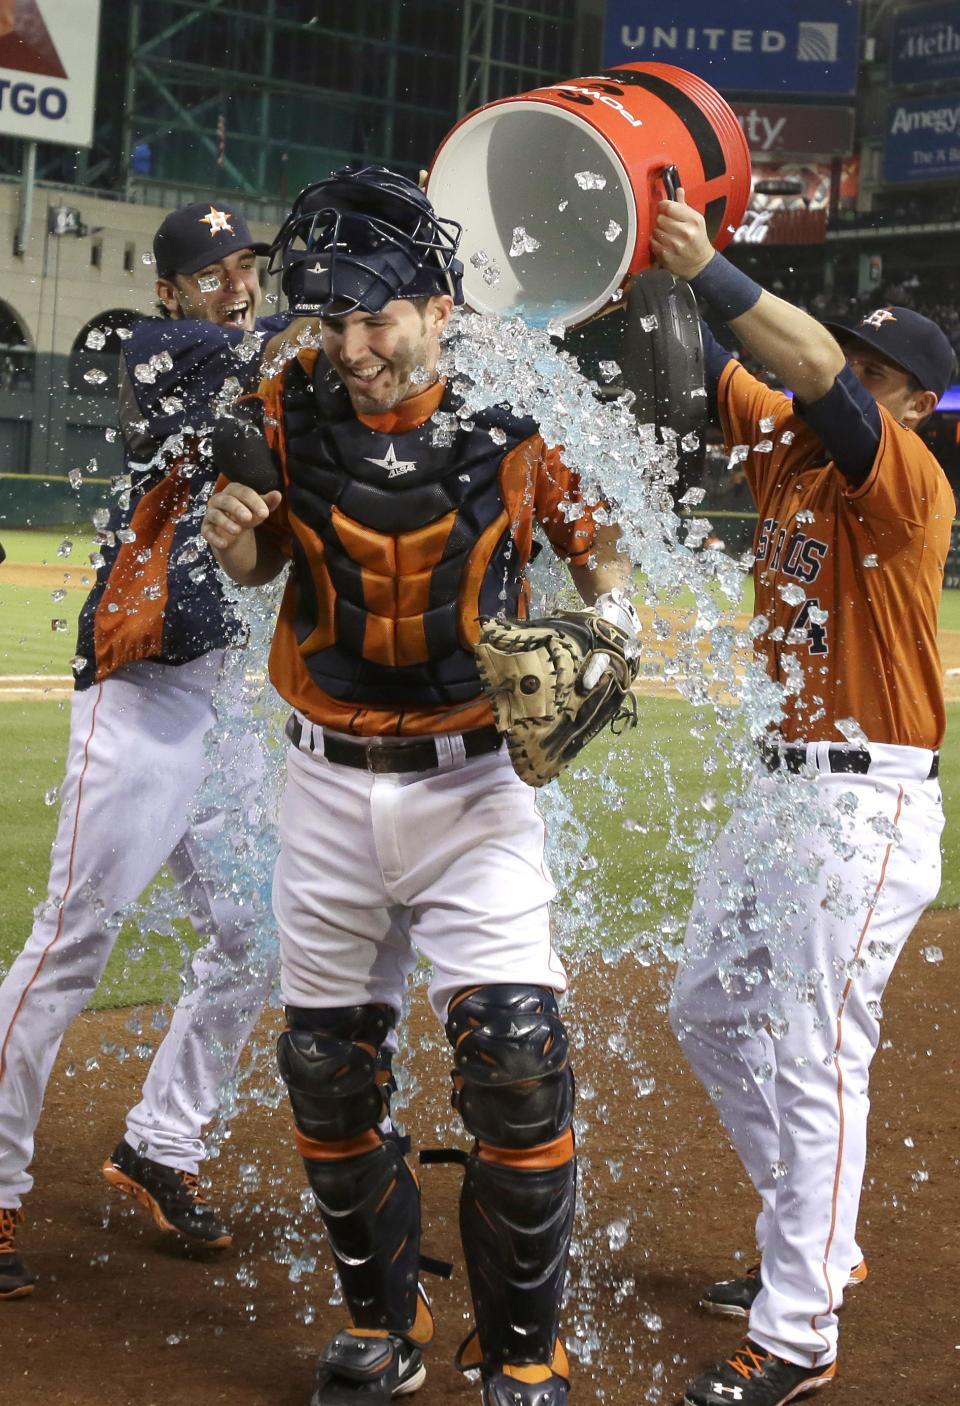 Dominguez hits grand slam, Astros beat Angels 9-7